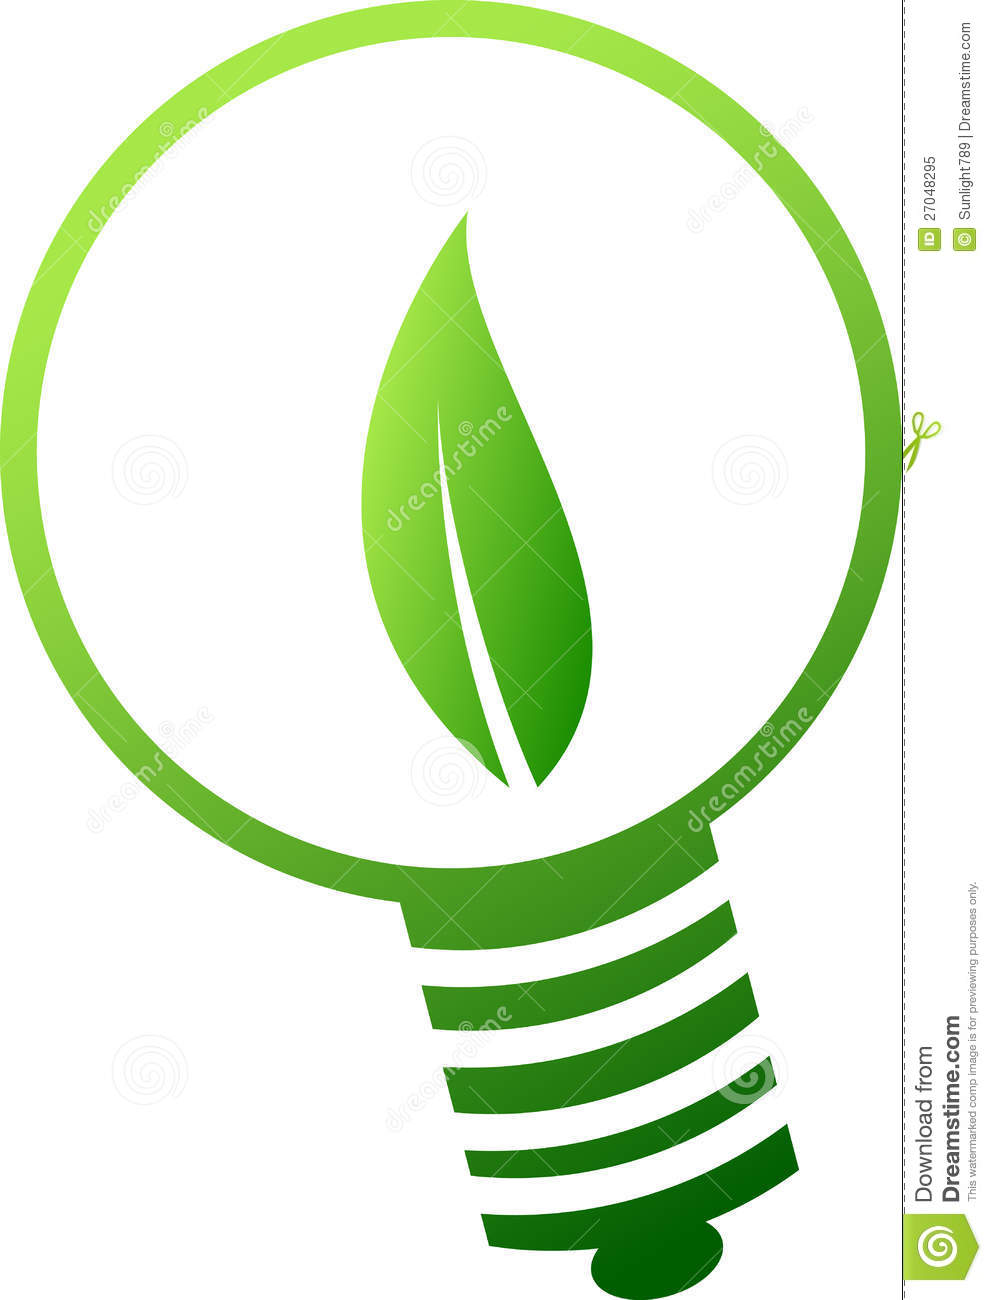 Green lamp symbol stock illustration. Illustration of future - 27048295